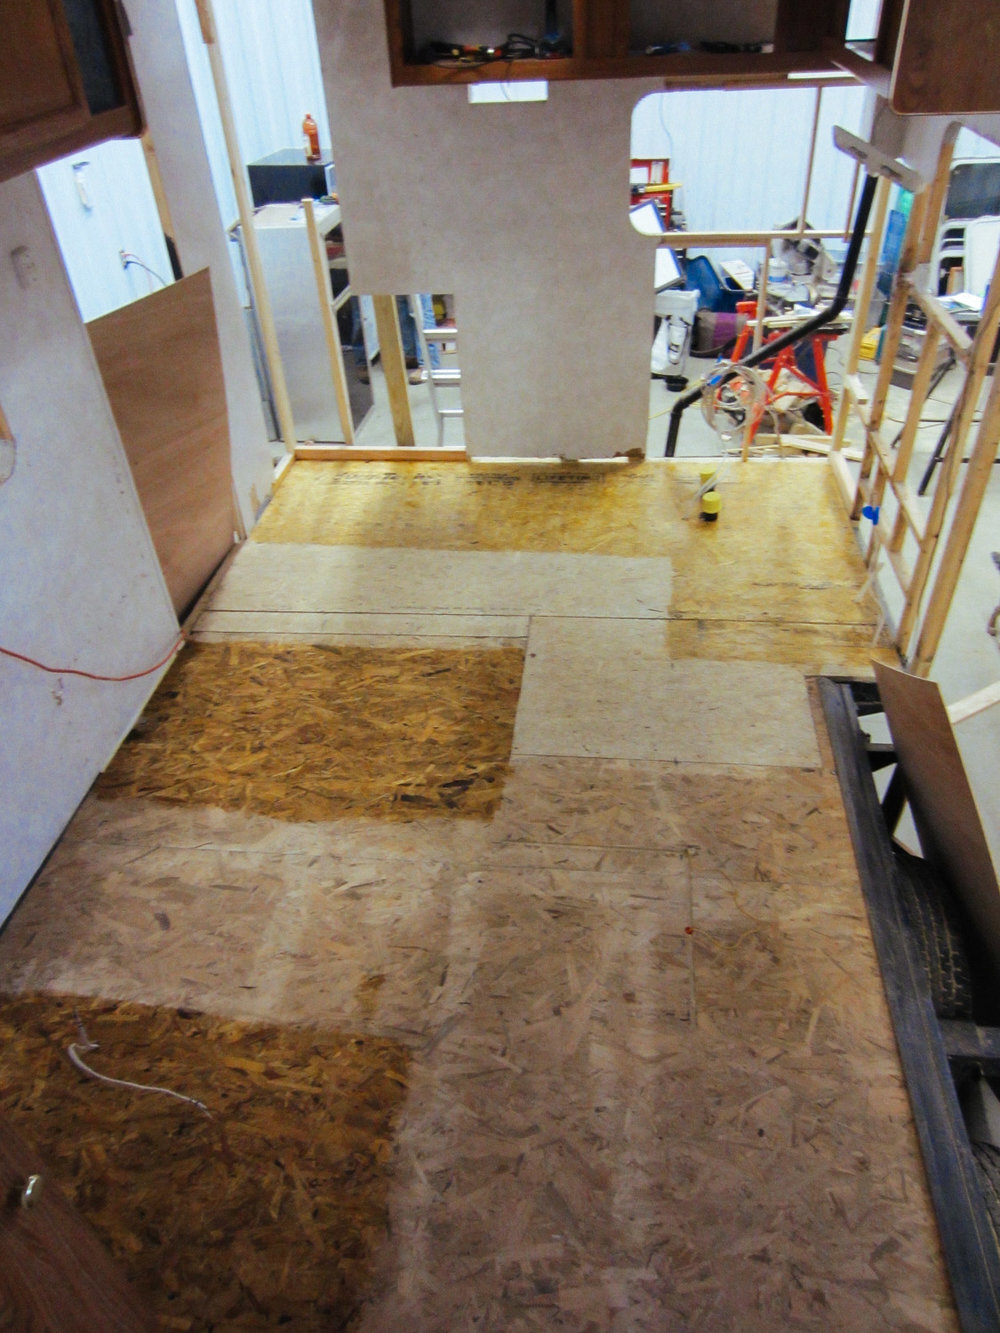 We applied polyurethane to the sections of the sub-floor that wouldn't have laminate floors installed over them. This is where the kitchen cabinet, dinette seats, and the couch are.